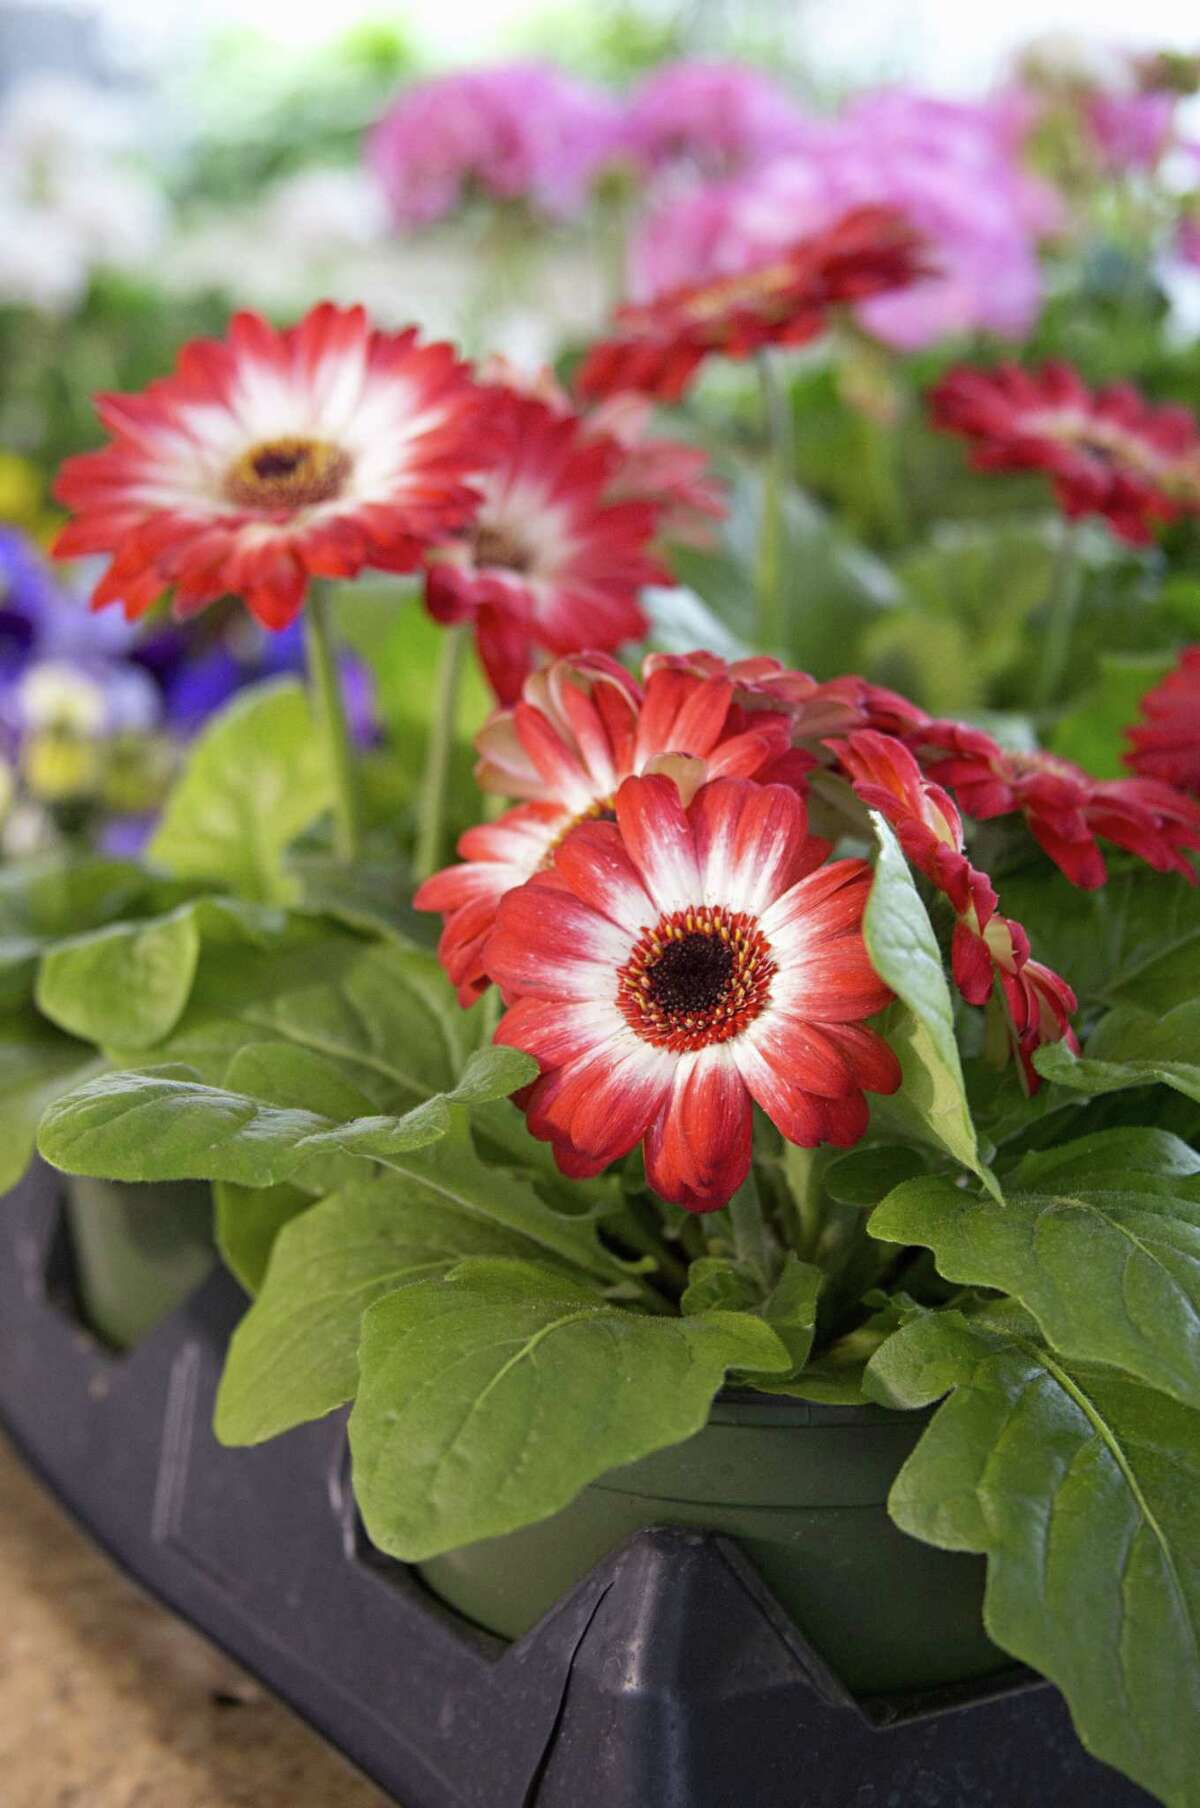 Gerbera daisies for sale at Natural Affairs Flower Shop in Portland.